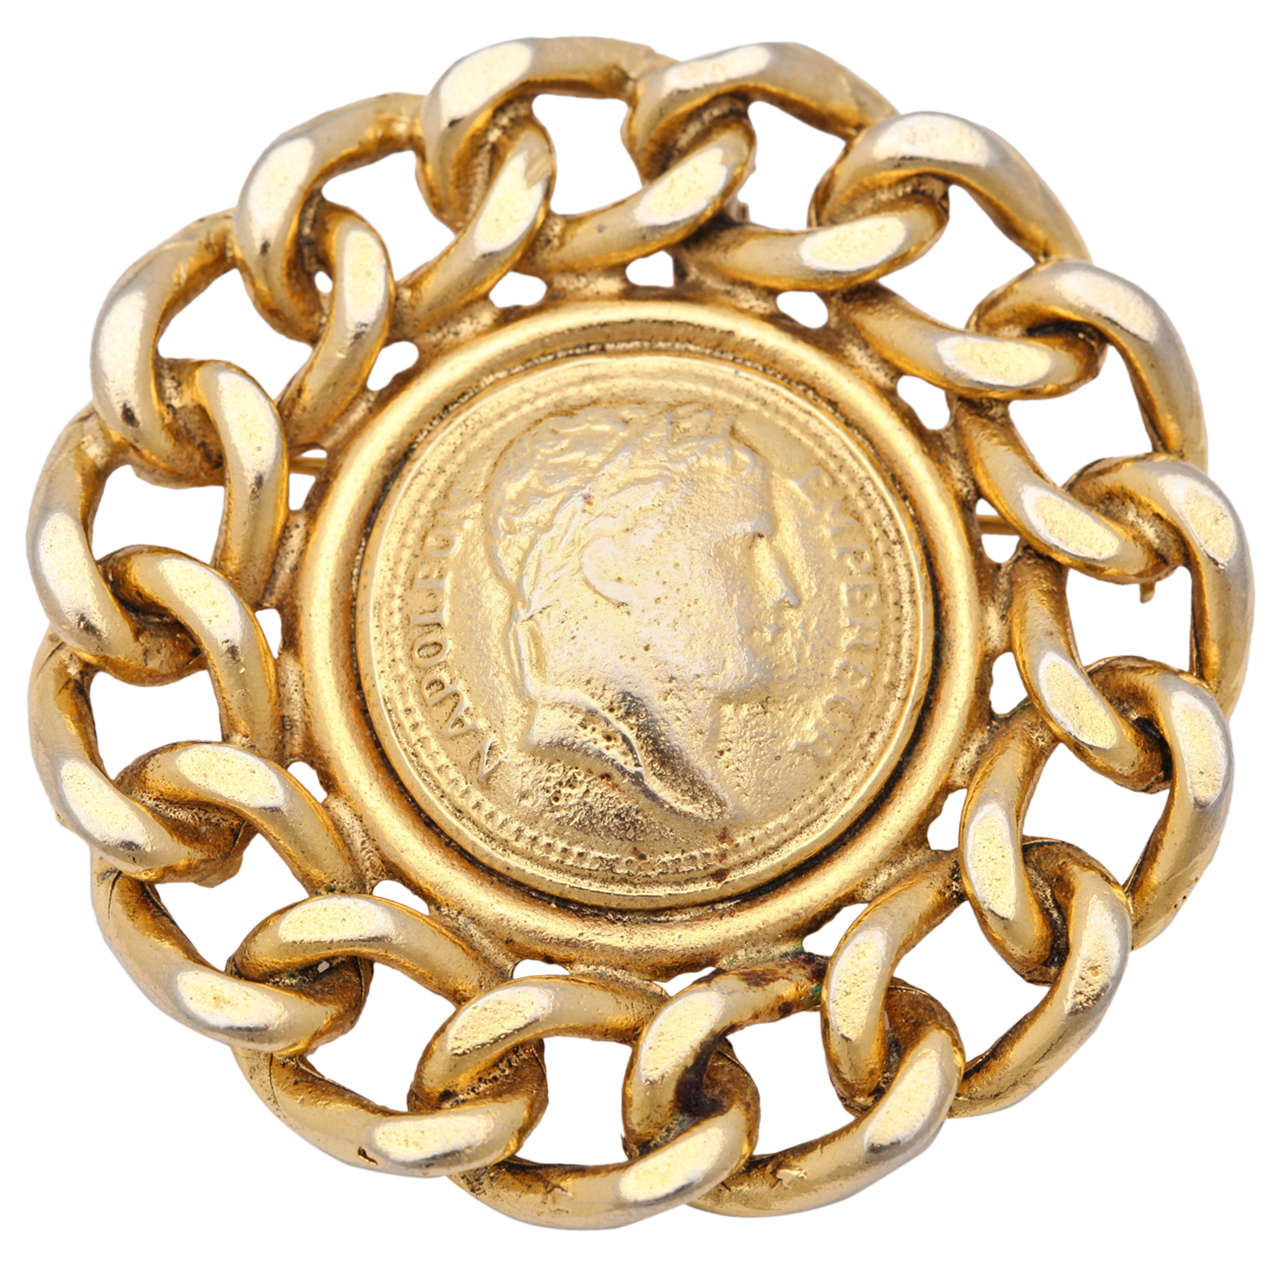 Large Coin Brooch or Pendant by Graziano